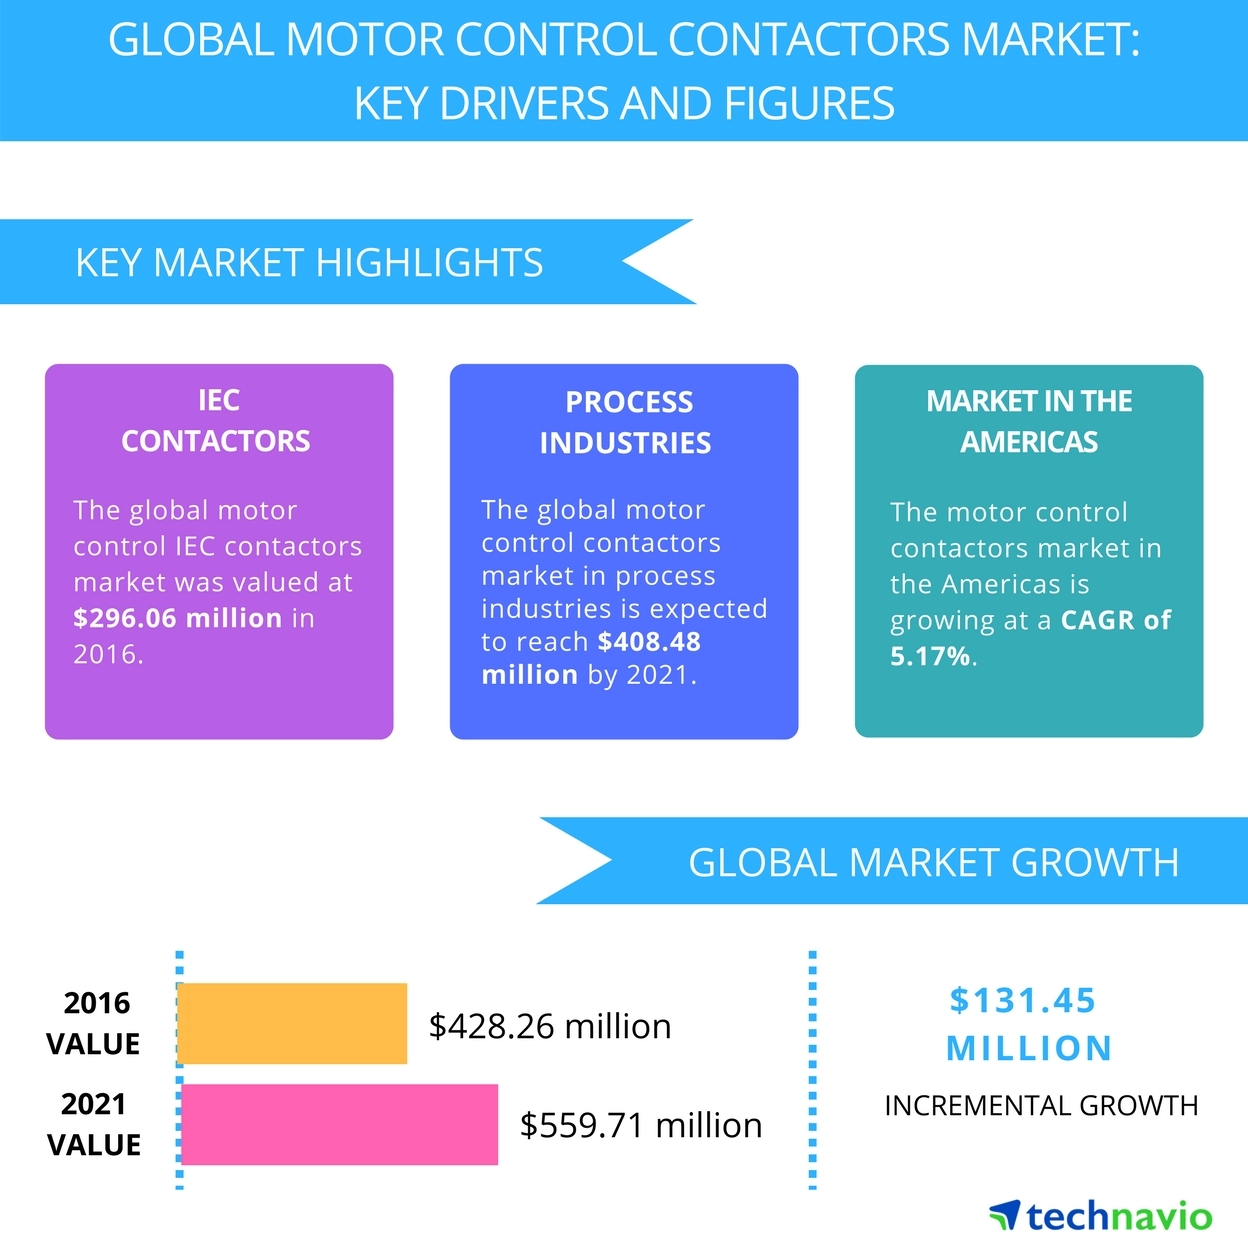 Motor Control Contactors Market Drivers And Forecasts By Technavio Working Of Business Wire